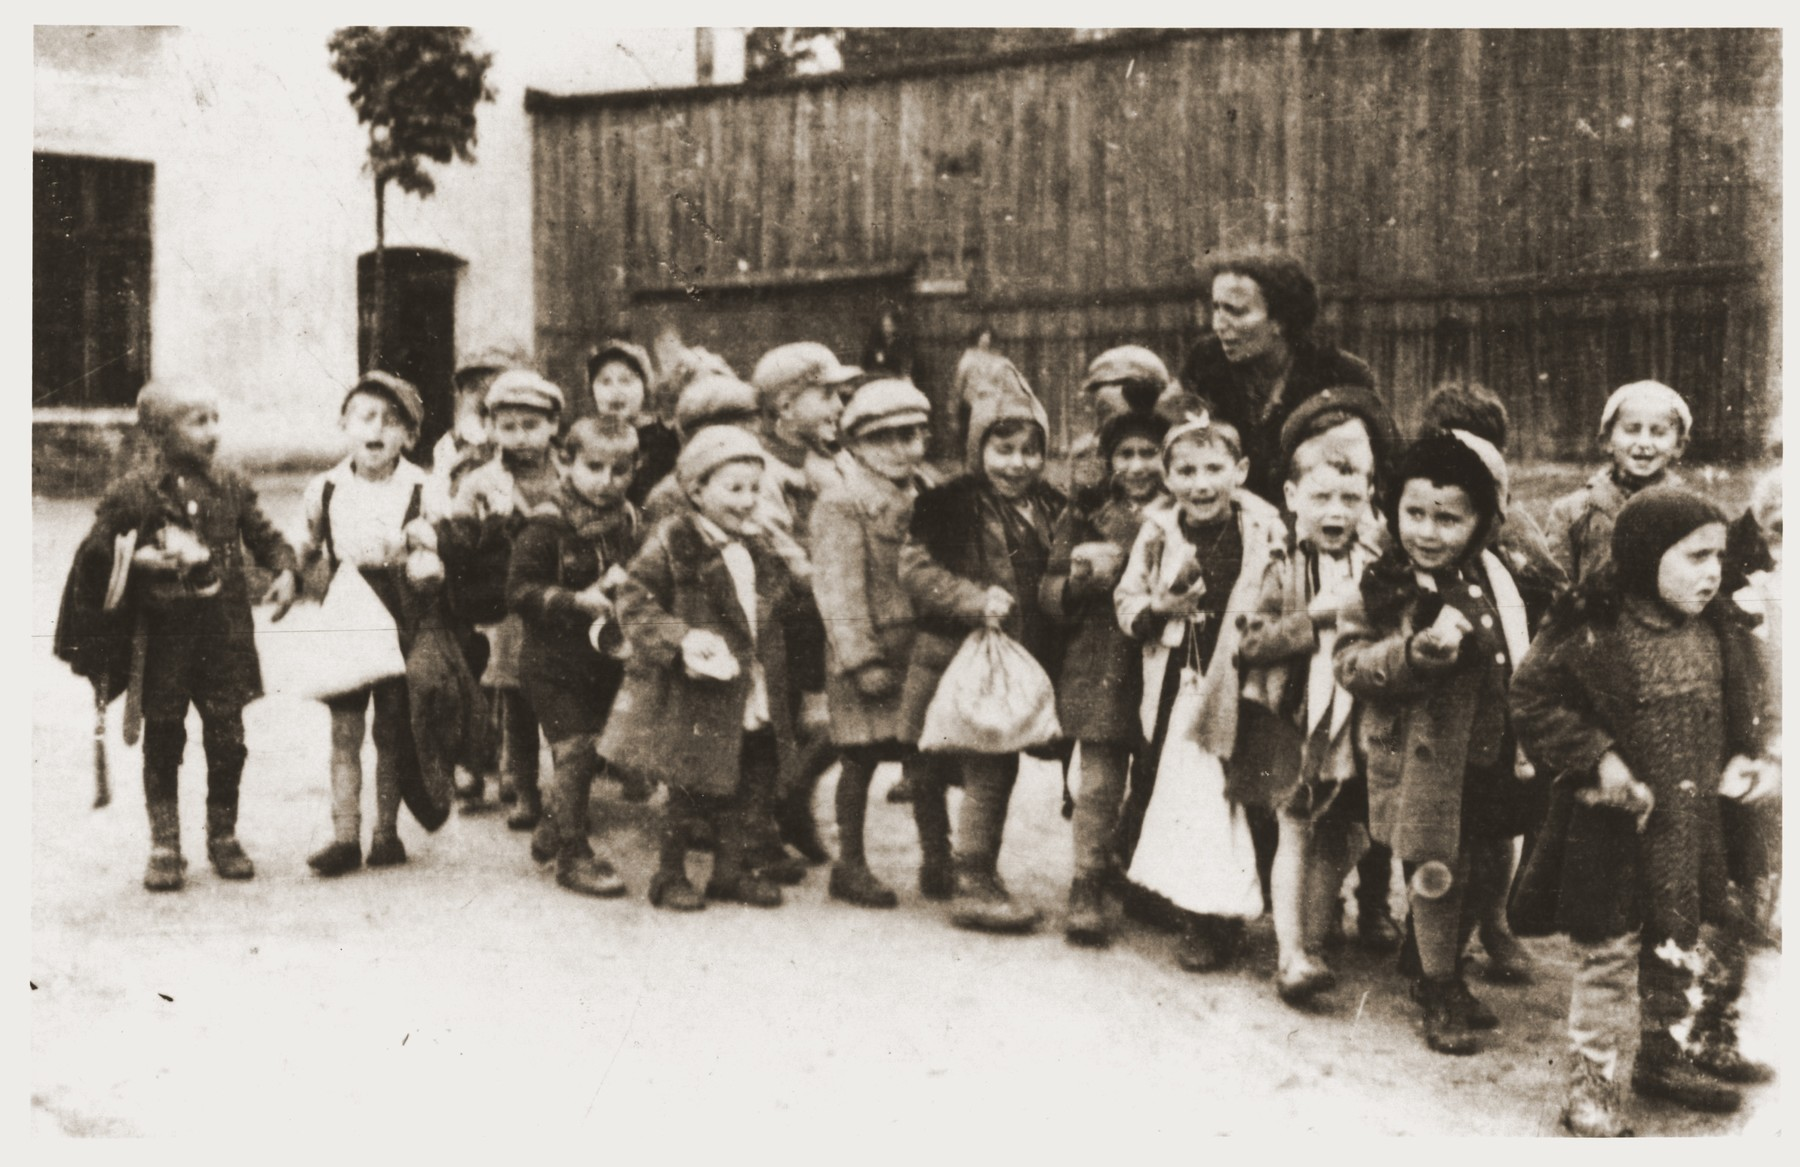 A group of pre-school children lined up with sacks in the Lodz ghetto.